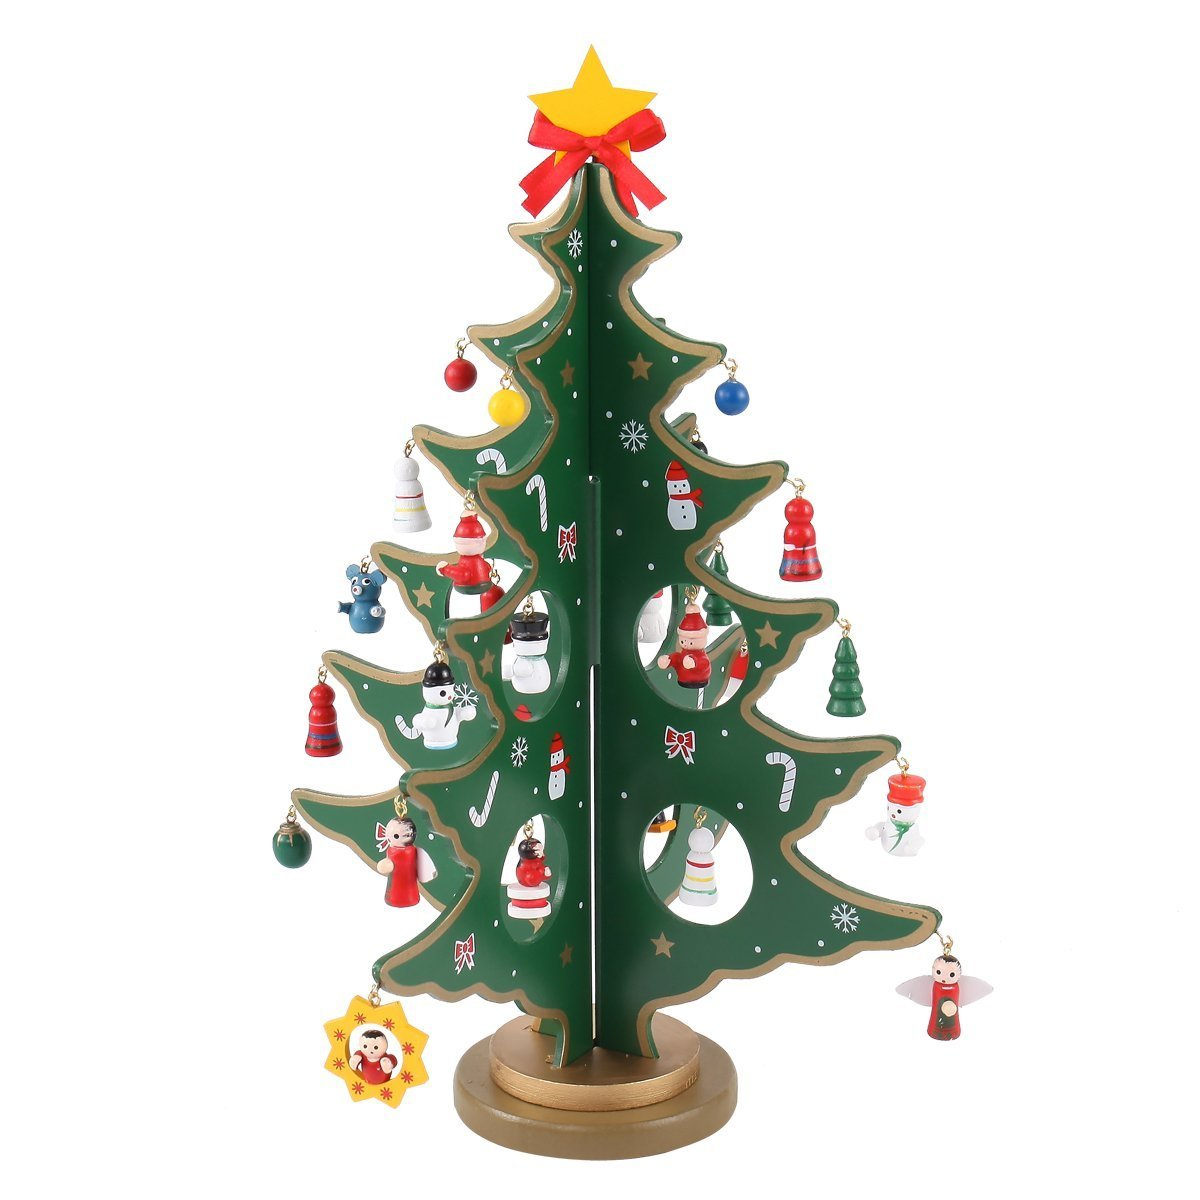 12Inch Funny Desktop Wooden Christmas Tree Decor Christmas Toy Set With 28 Mini Ornaments